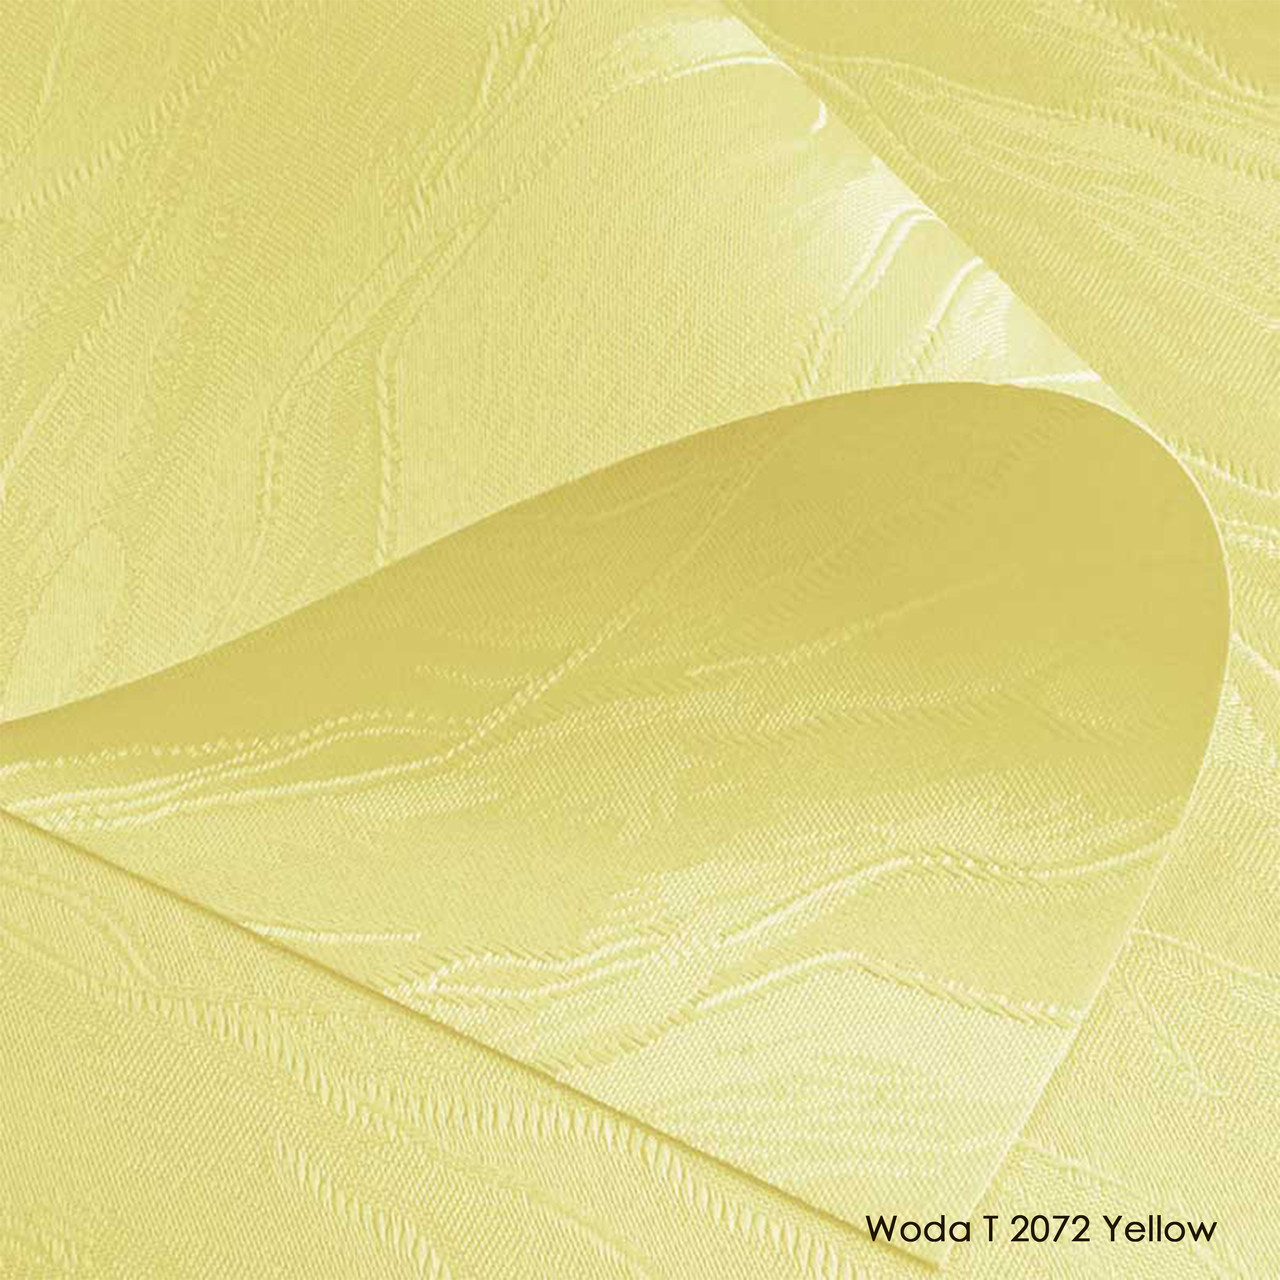 Woda T 2072 Yellow